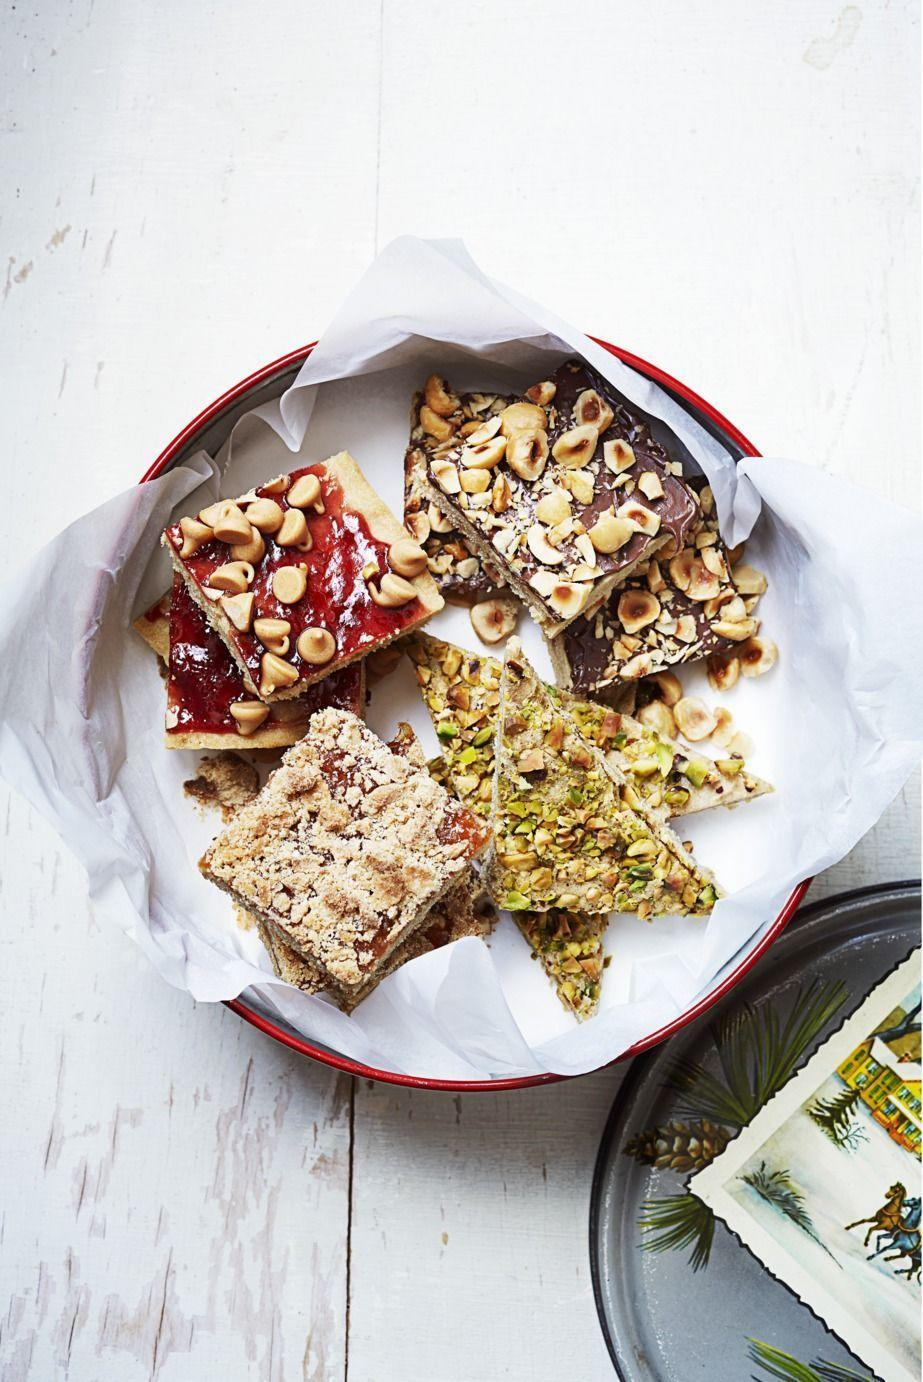 "<p>With a cookie bar base and a chocolate hazelnut topping, these treats bring delicious variety to your baking game.</p><p><em><a href=""https://www.goodhousekeeping.com/food-recipes/a16045/brown-sugar-hazelnut-bars-recipe-ghk1214/"" rel=""nofollow noopener"" target=""_blank"" data-ylk=""slk:Get the recipe for Brown Sugar–Hazelnut Bars »"" class=""link rapid-noclick-resp"">Get the recipe for Brown Sugar–Hazelnut Bars »</a></em></p>"